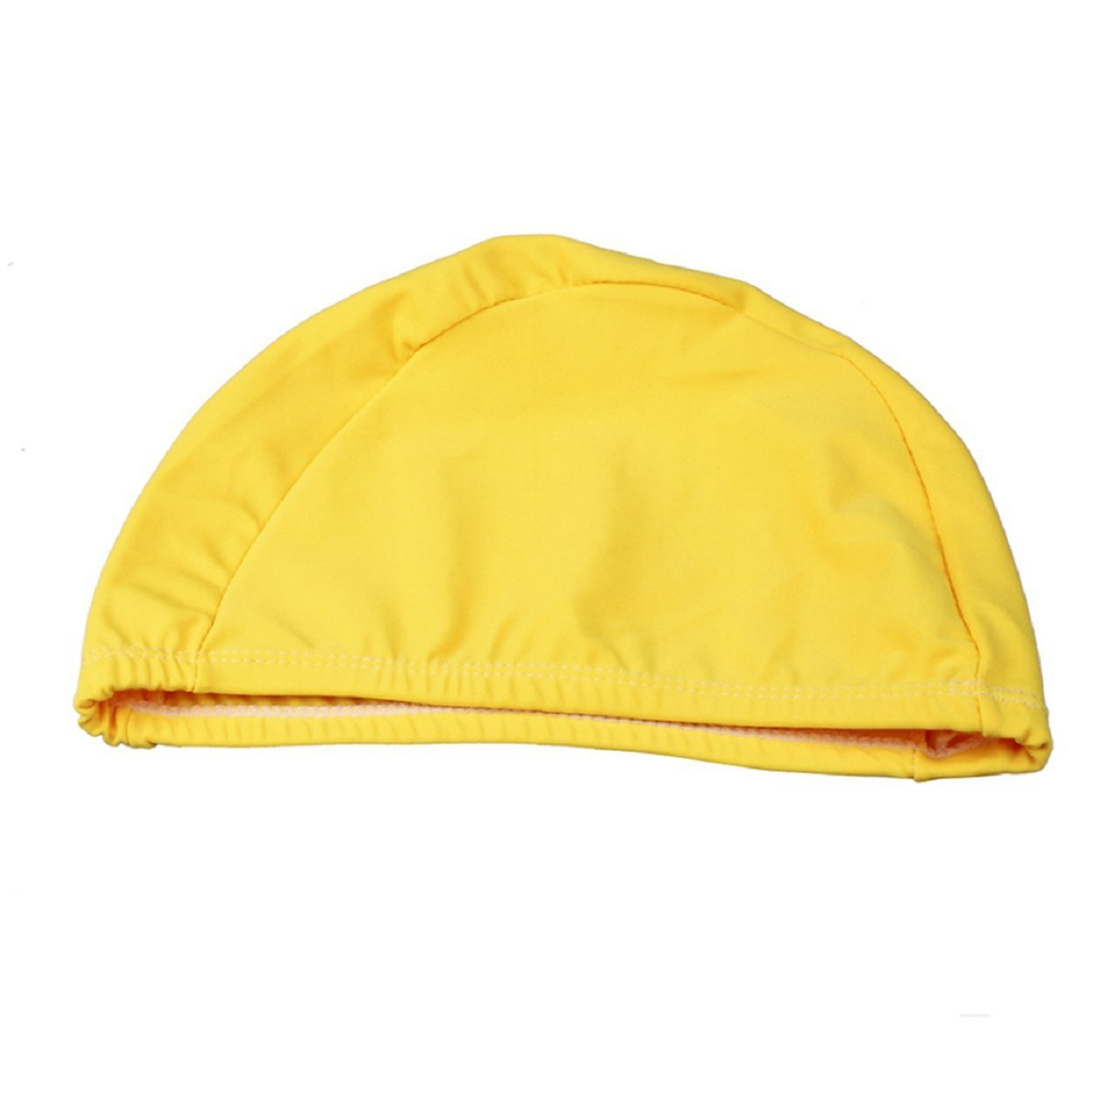 New Sale Adult Swimming Hats Unisex Outdoor Sports Stretch Cap Yellow